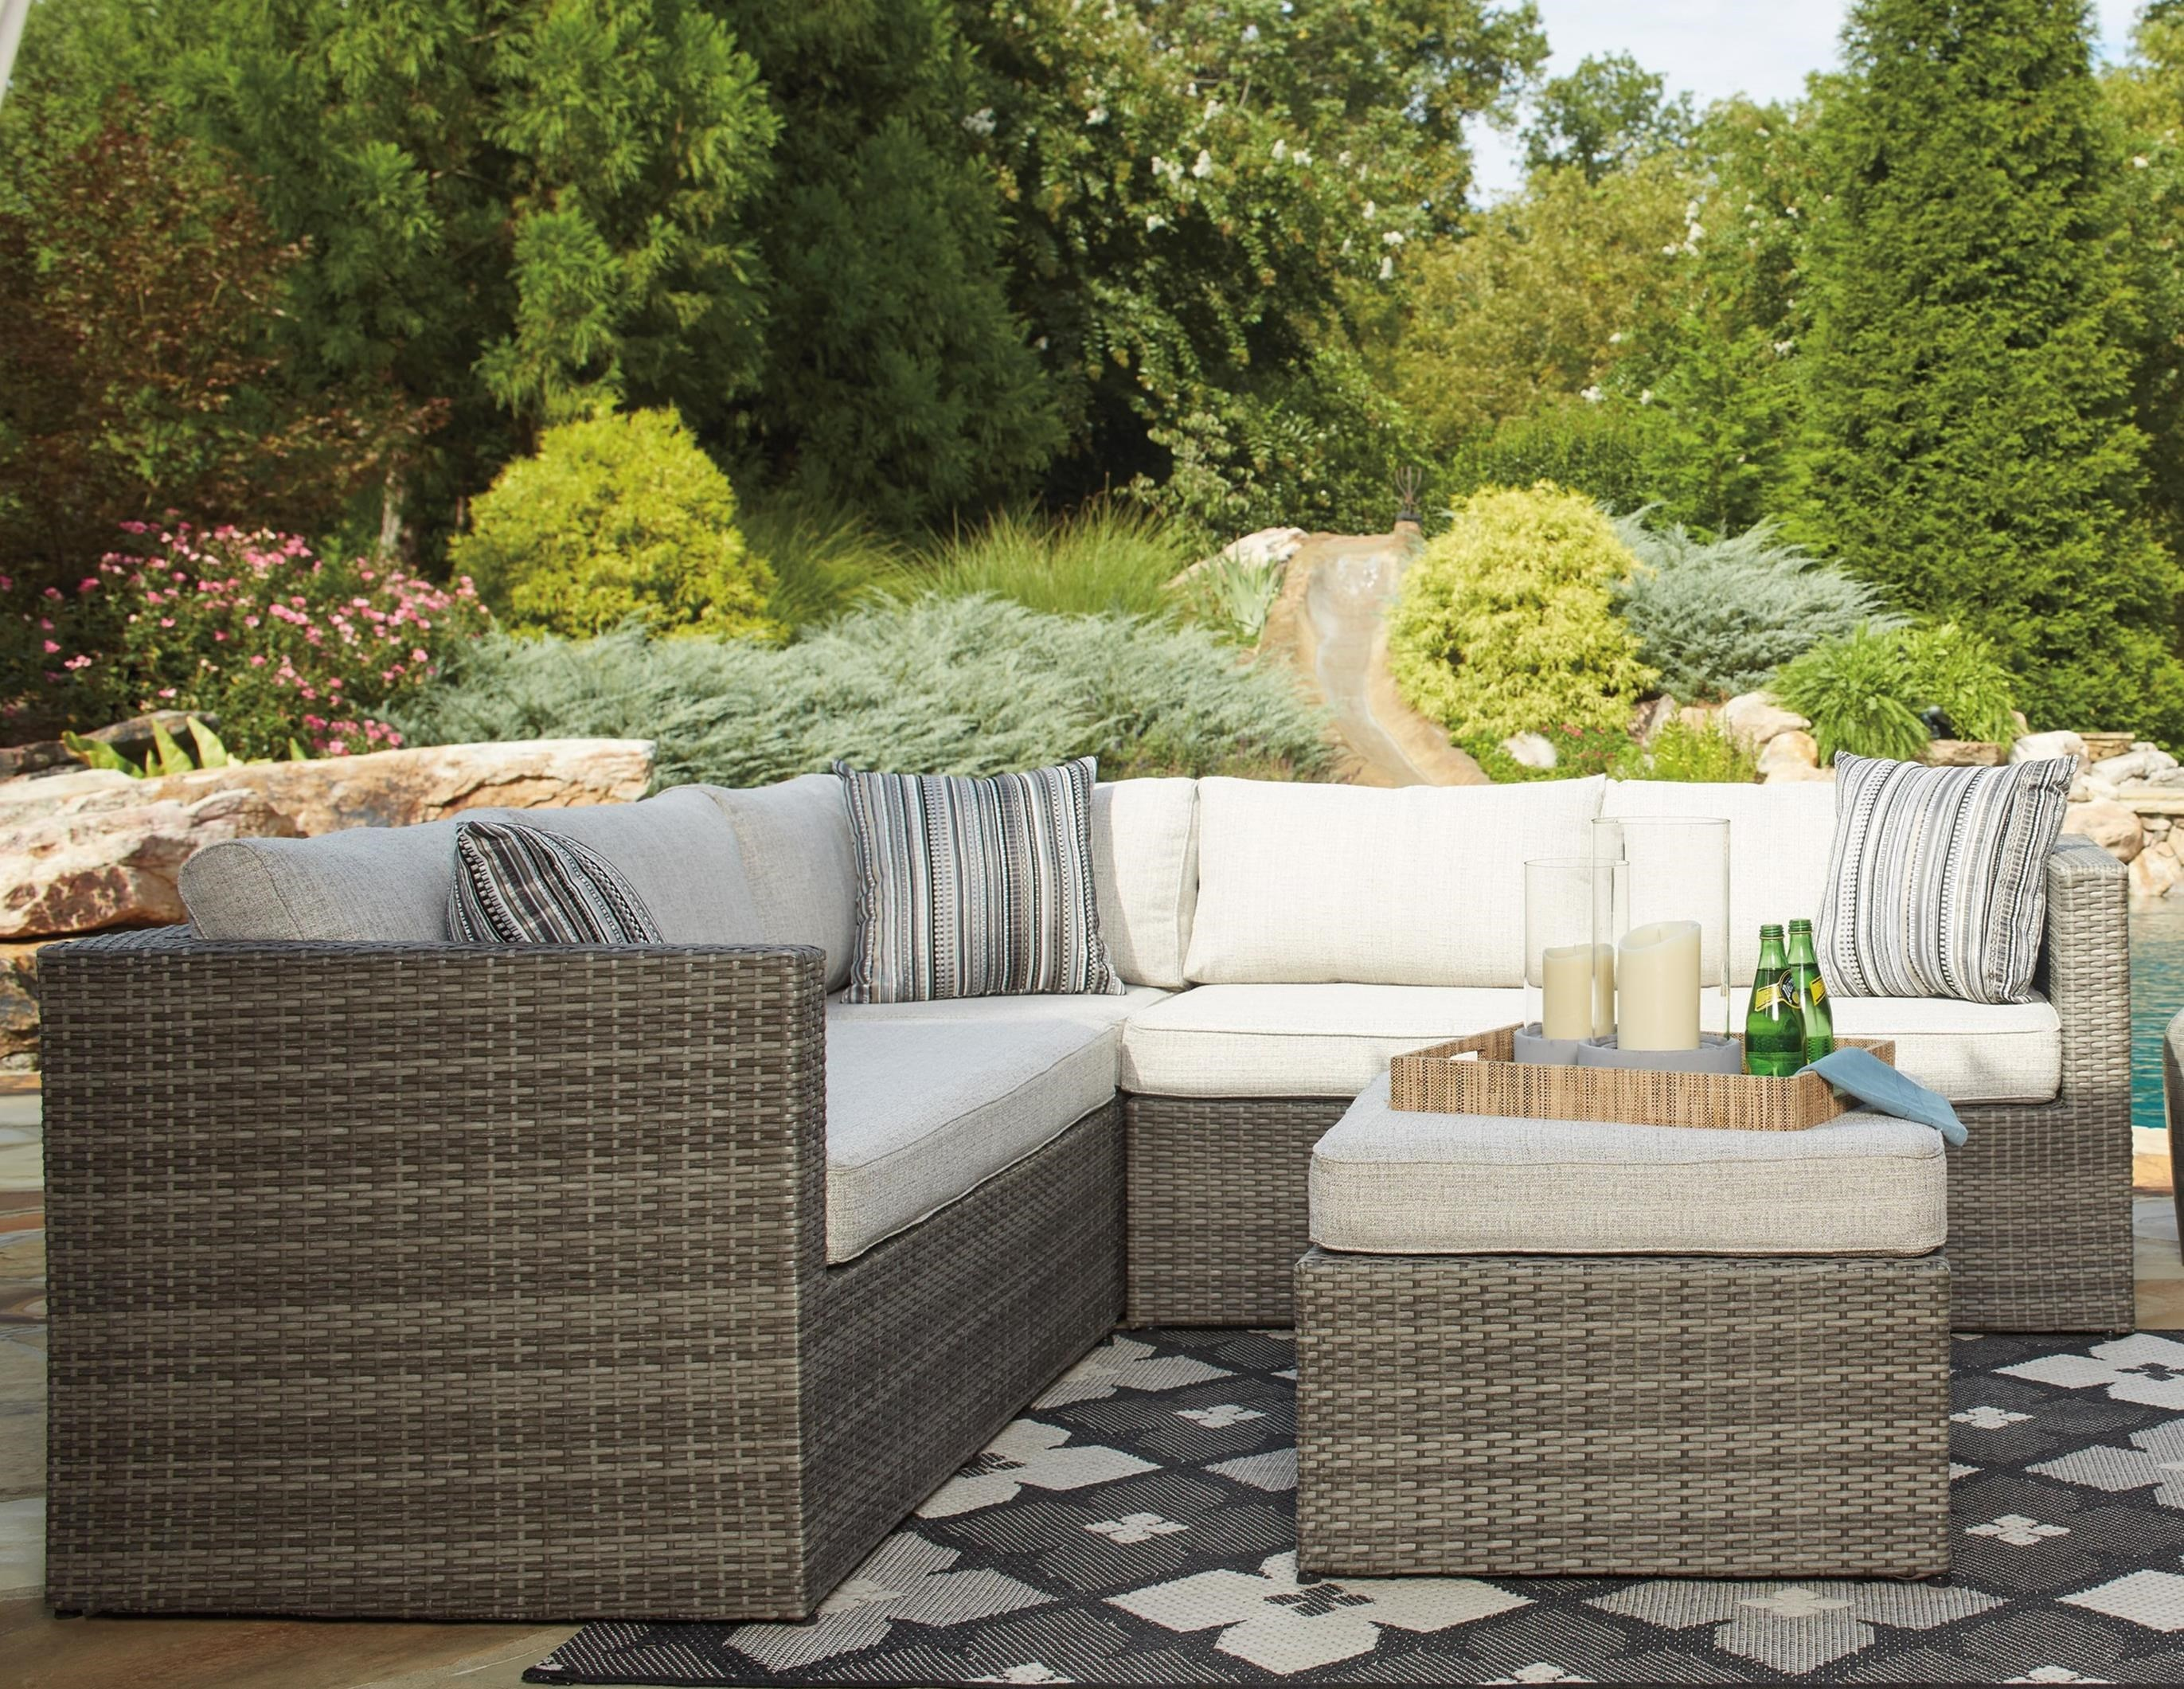 Attirant Signature Design By Ashley Peckham ParkOutdoor Sectional Set With Ottoman  ...